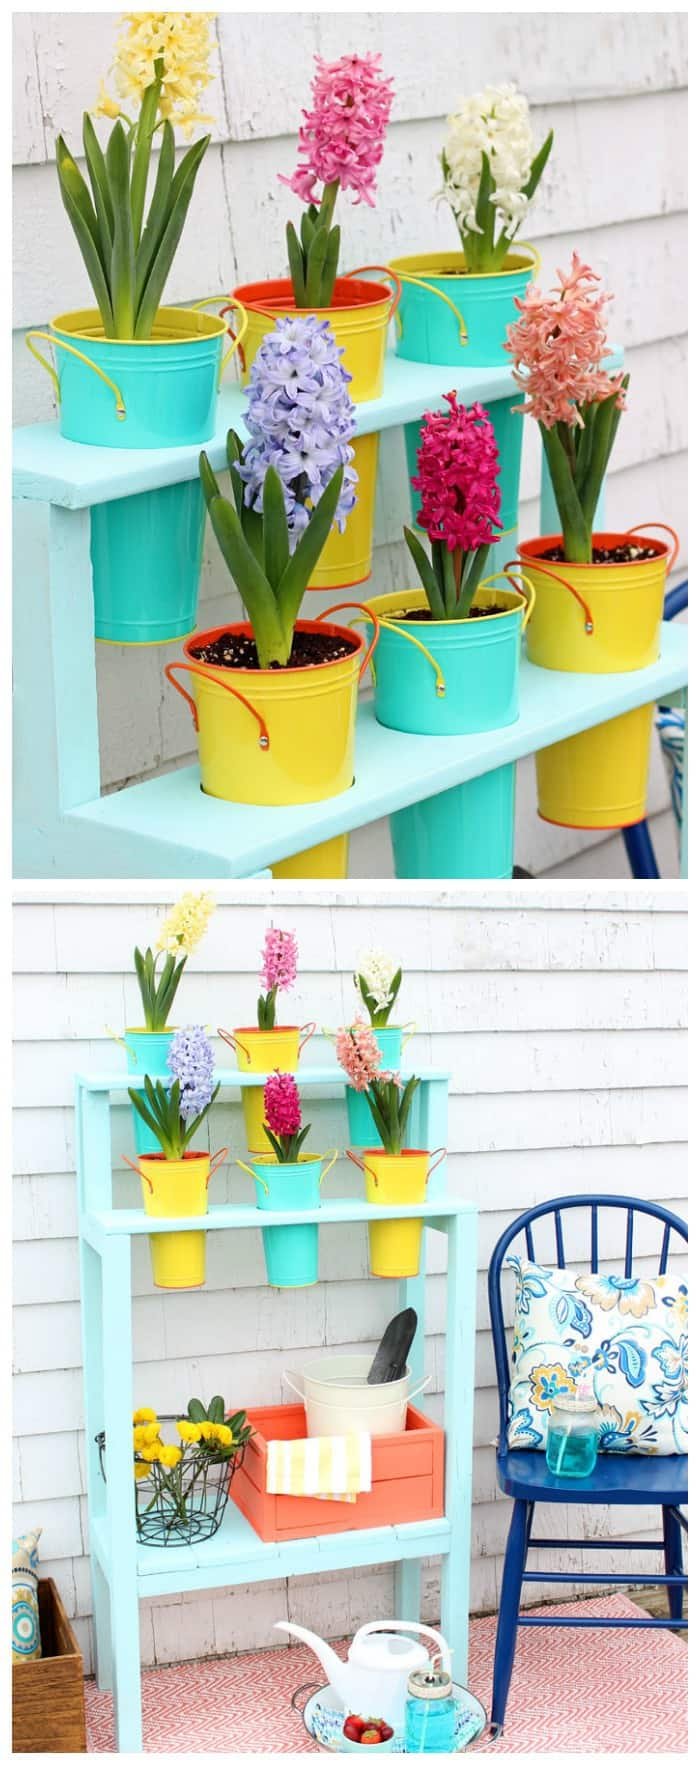 Easy To Build DIY Patio Planter For $10!